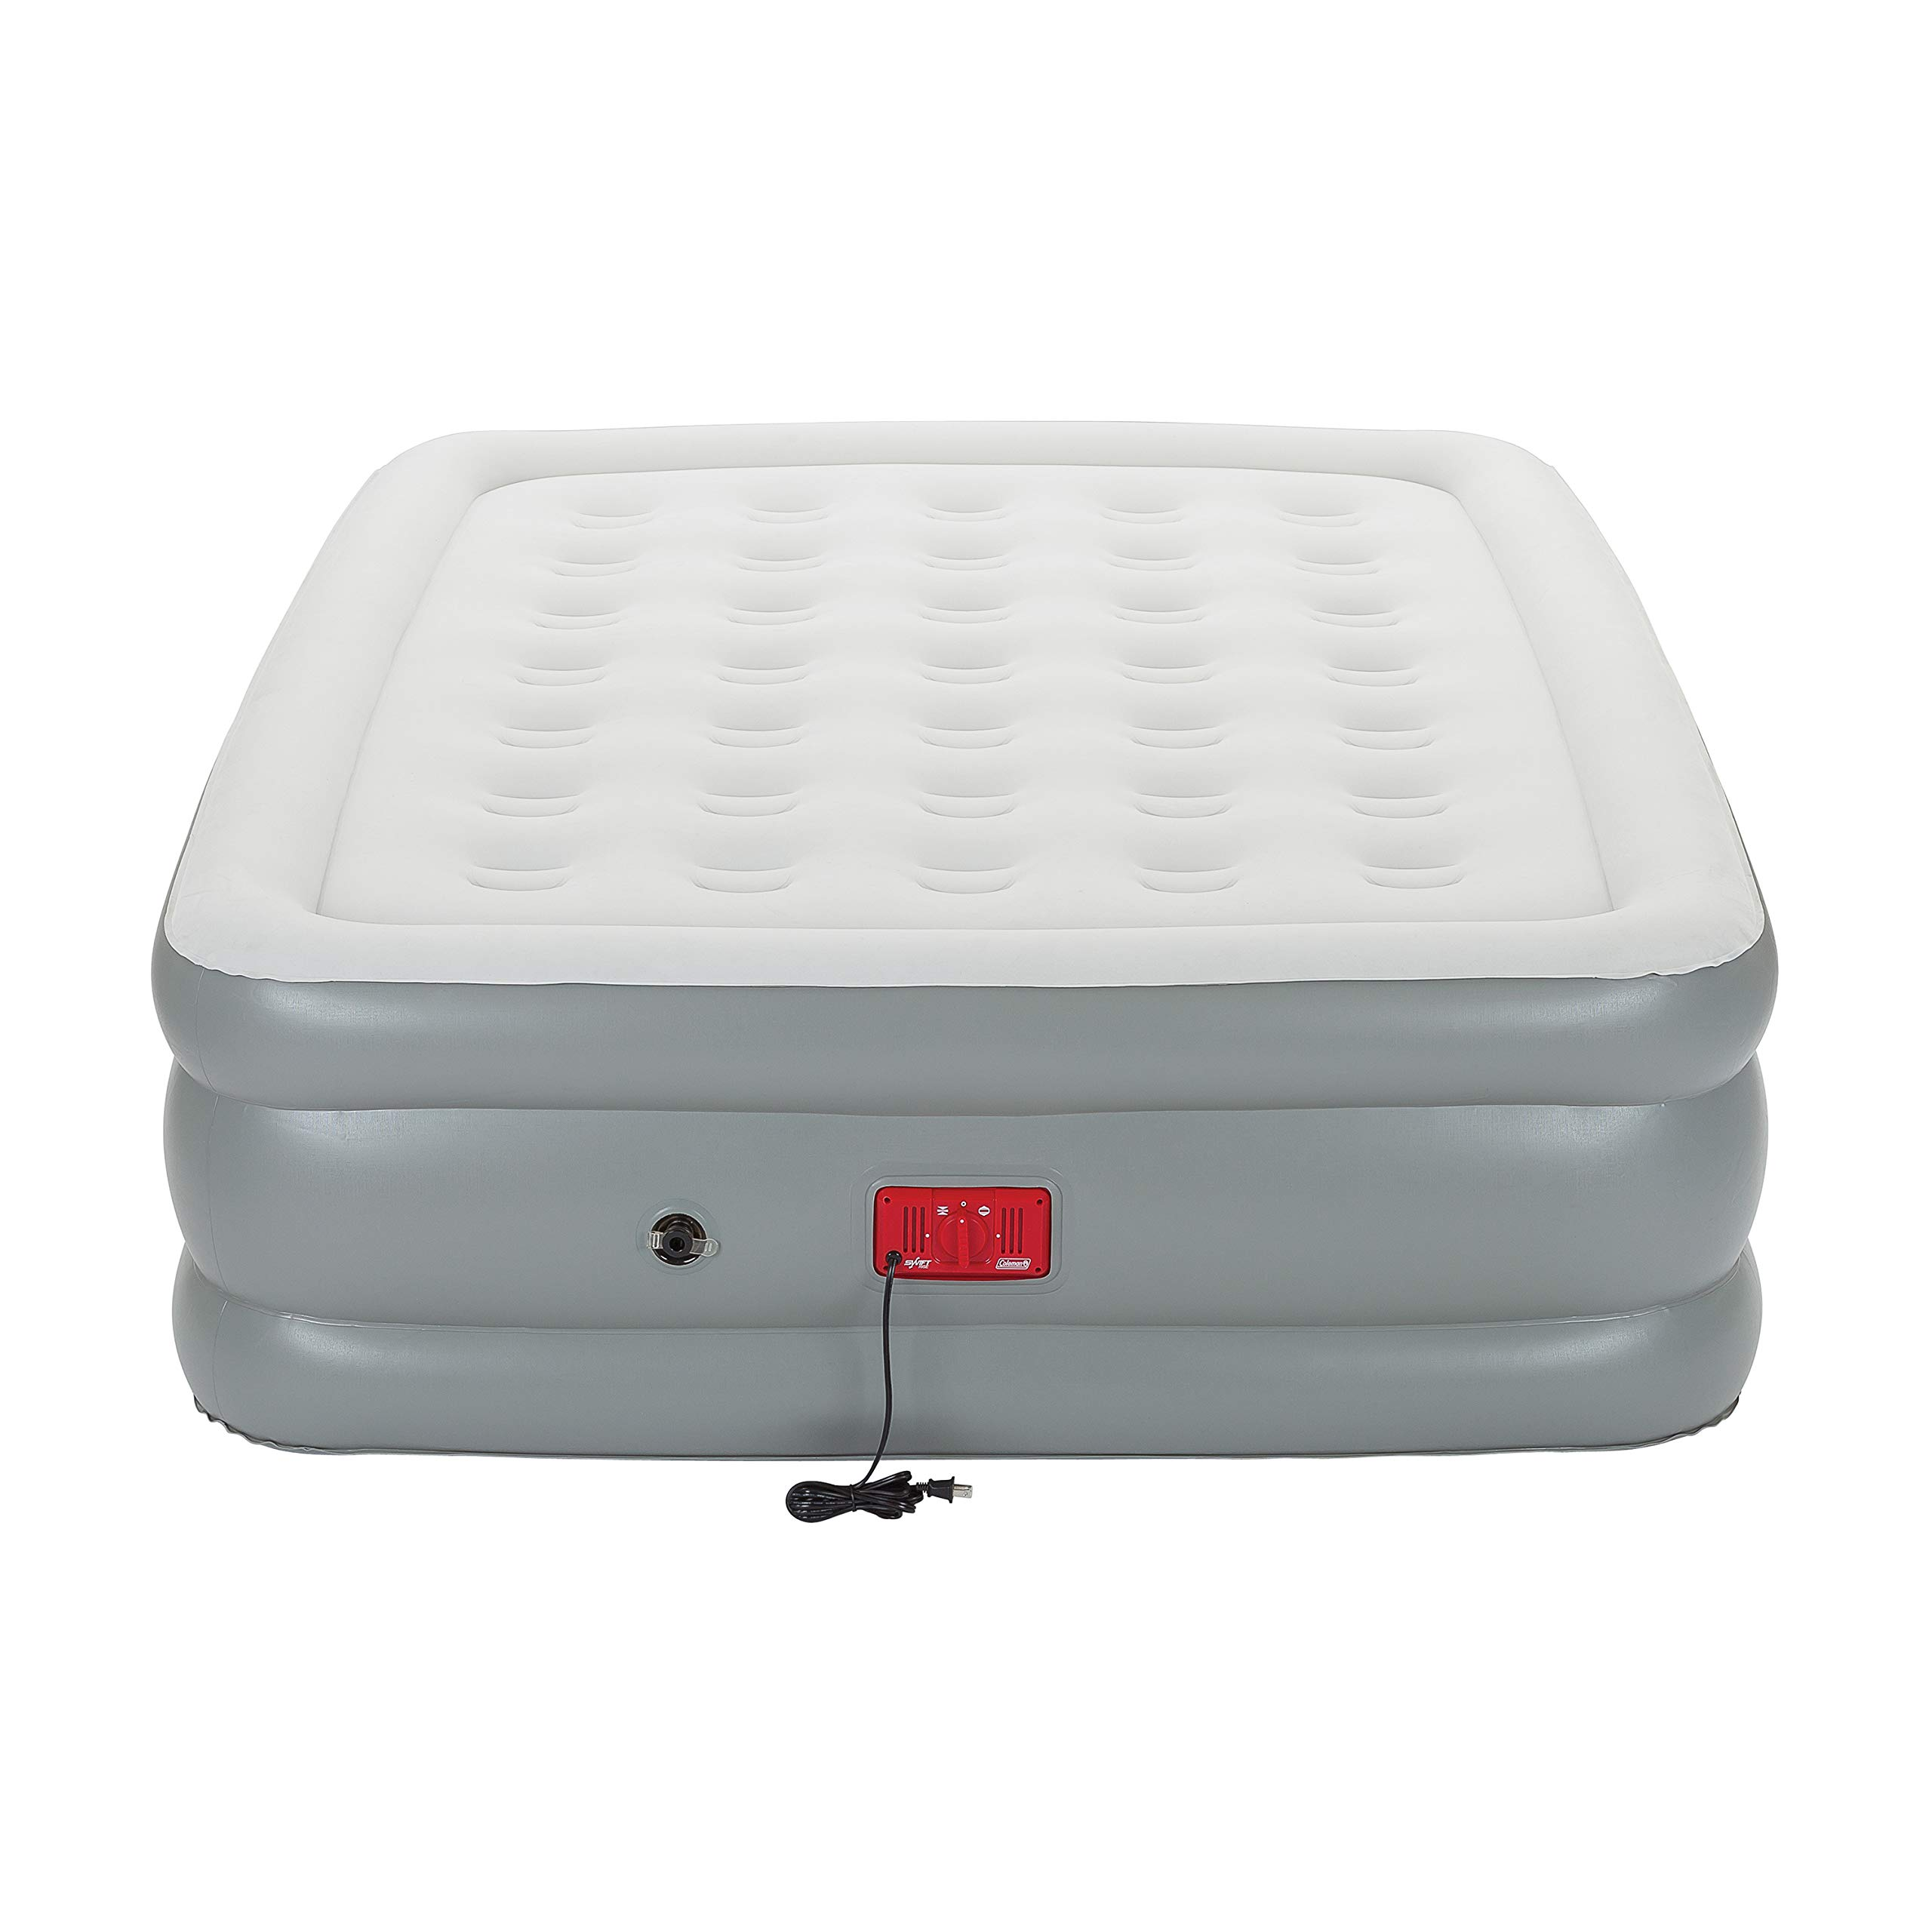 Coleman Air Mattress with Built-in Pump | SupportRest Elite Double-High Inflatable Air Bed, Queen by Coleman